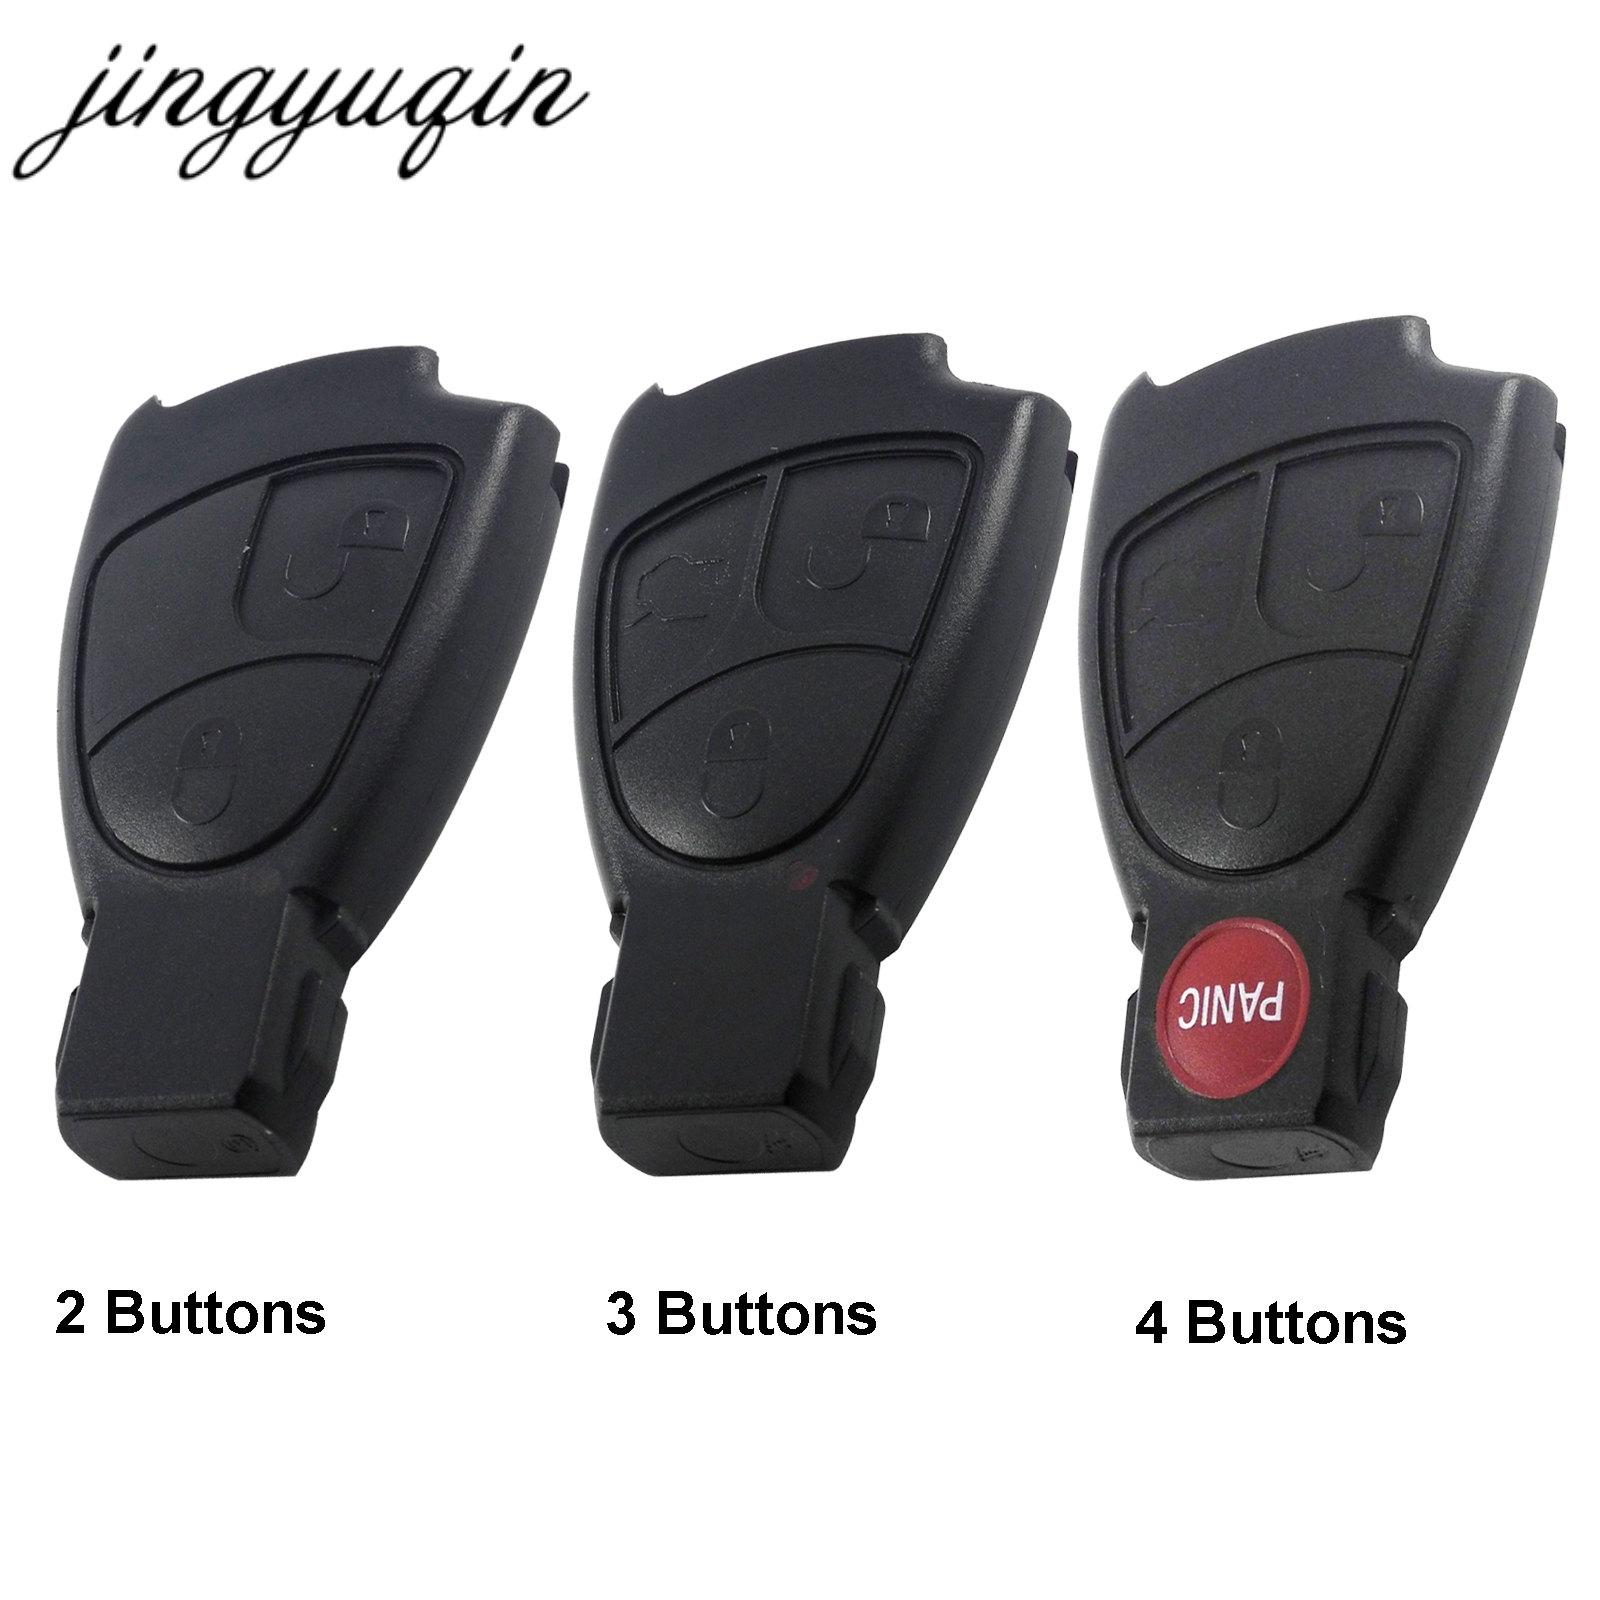 jingyuqin 3 Buttons Remote Car Key Fob Case For Mercedes Benz B C E ML S CLK CL Vito 639 3BT Rreplacement Shell недорого